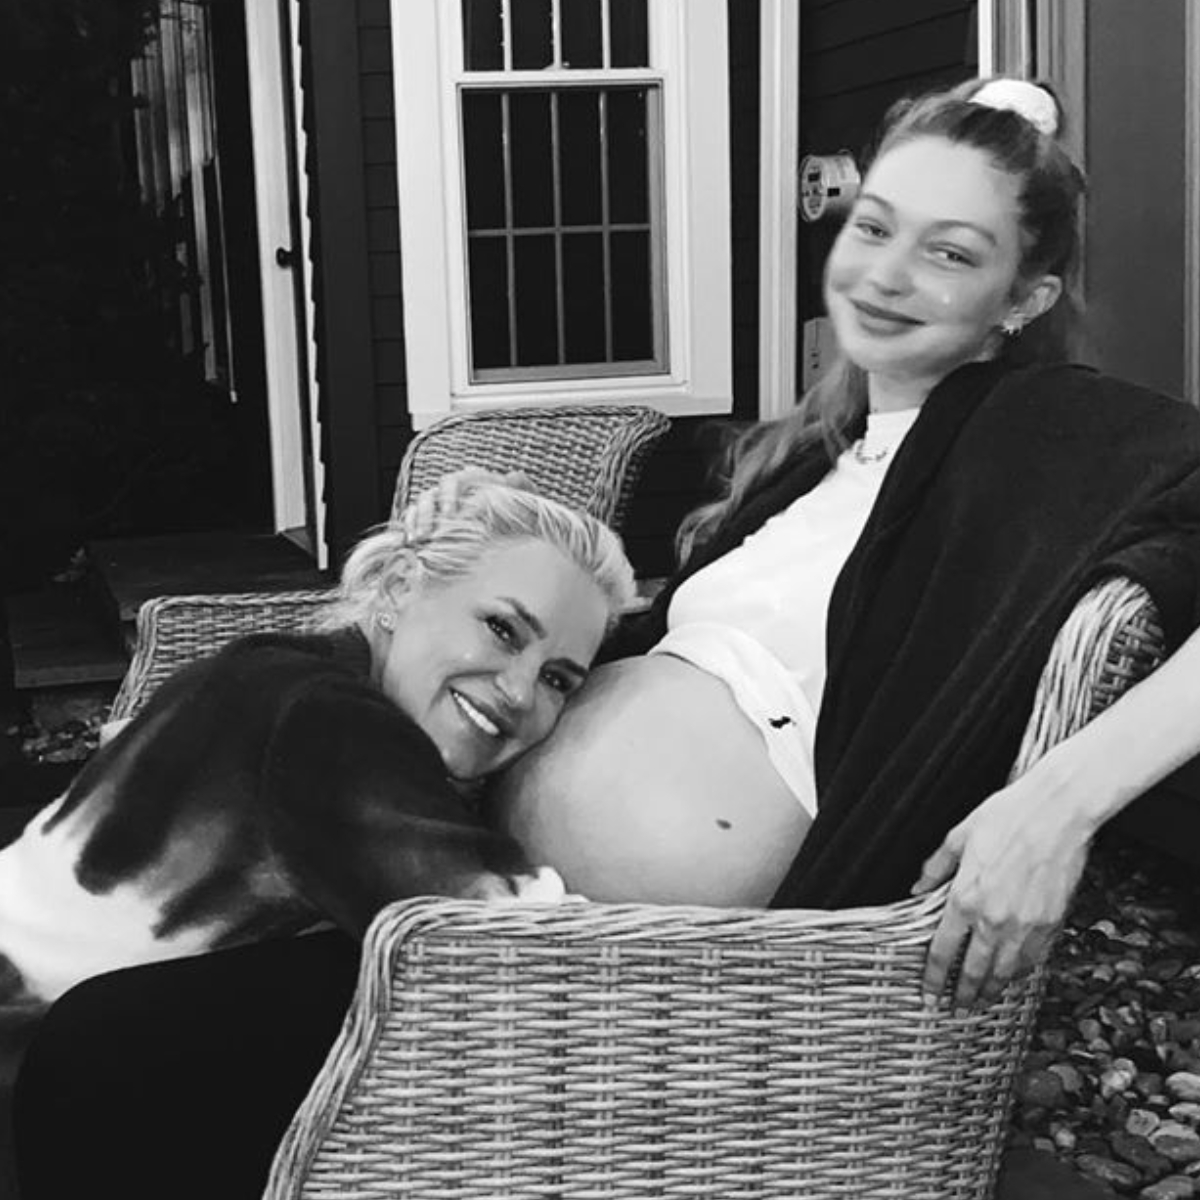 Gigi Hadid and Zayn Malik are expected to welcome their lil angel this month